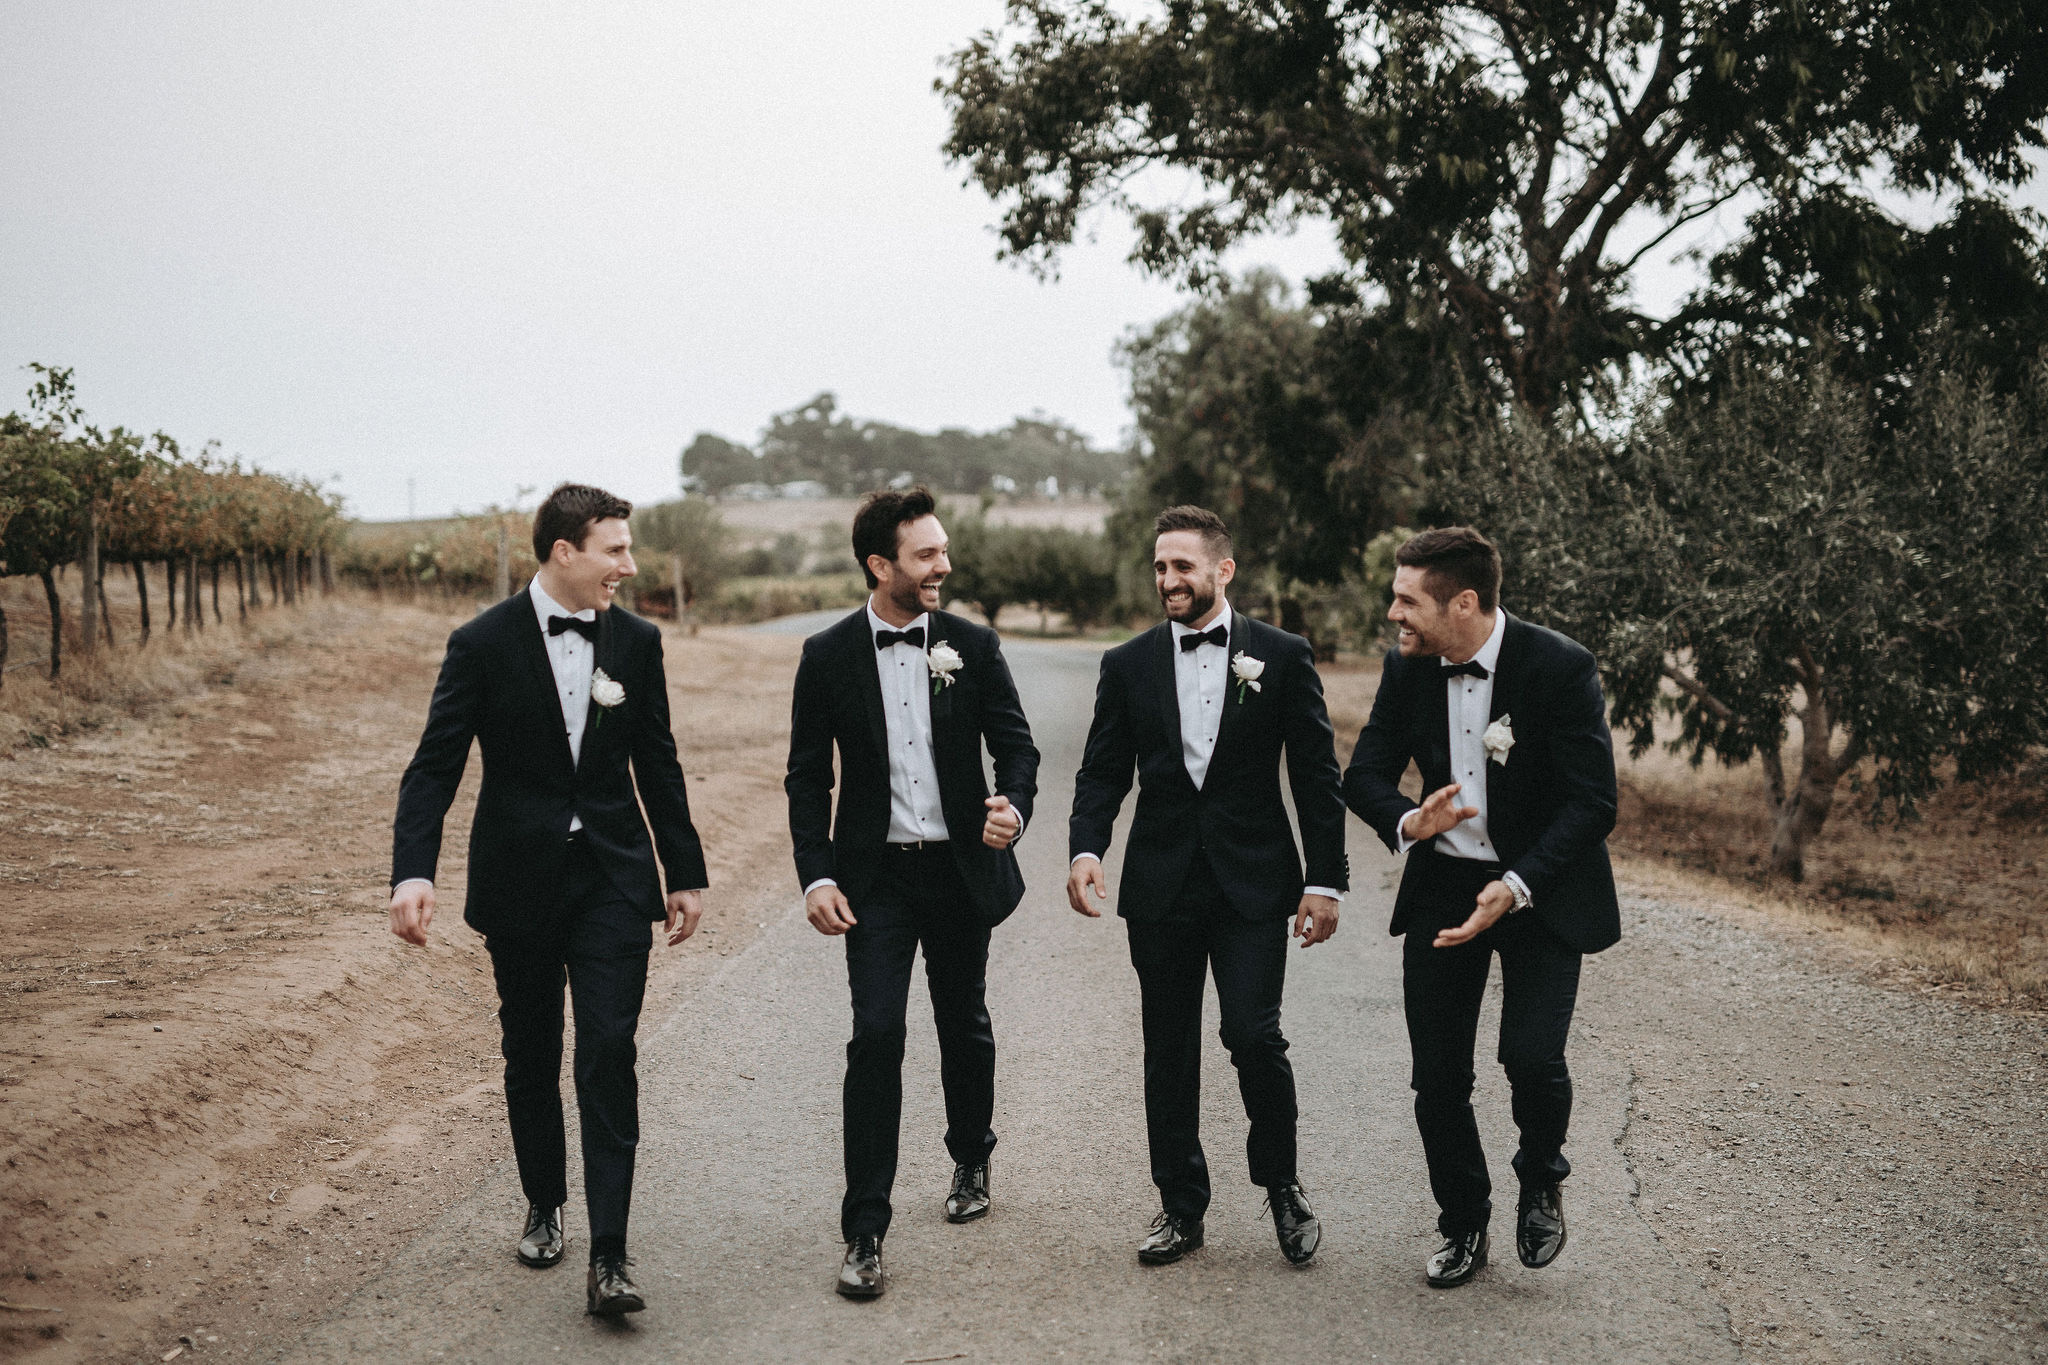 Groom and groomsmen wearing matching custom tailored suits